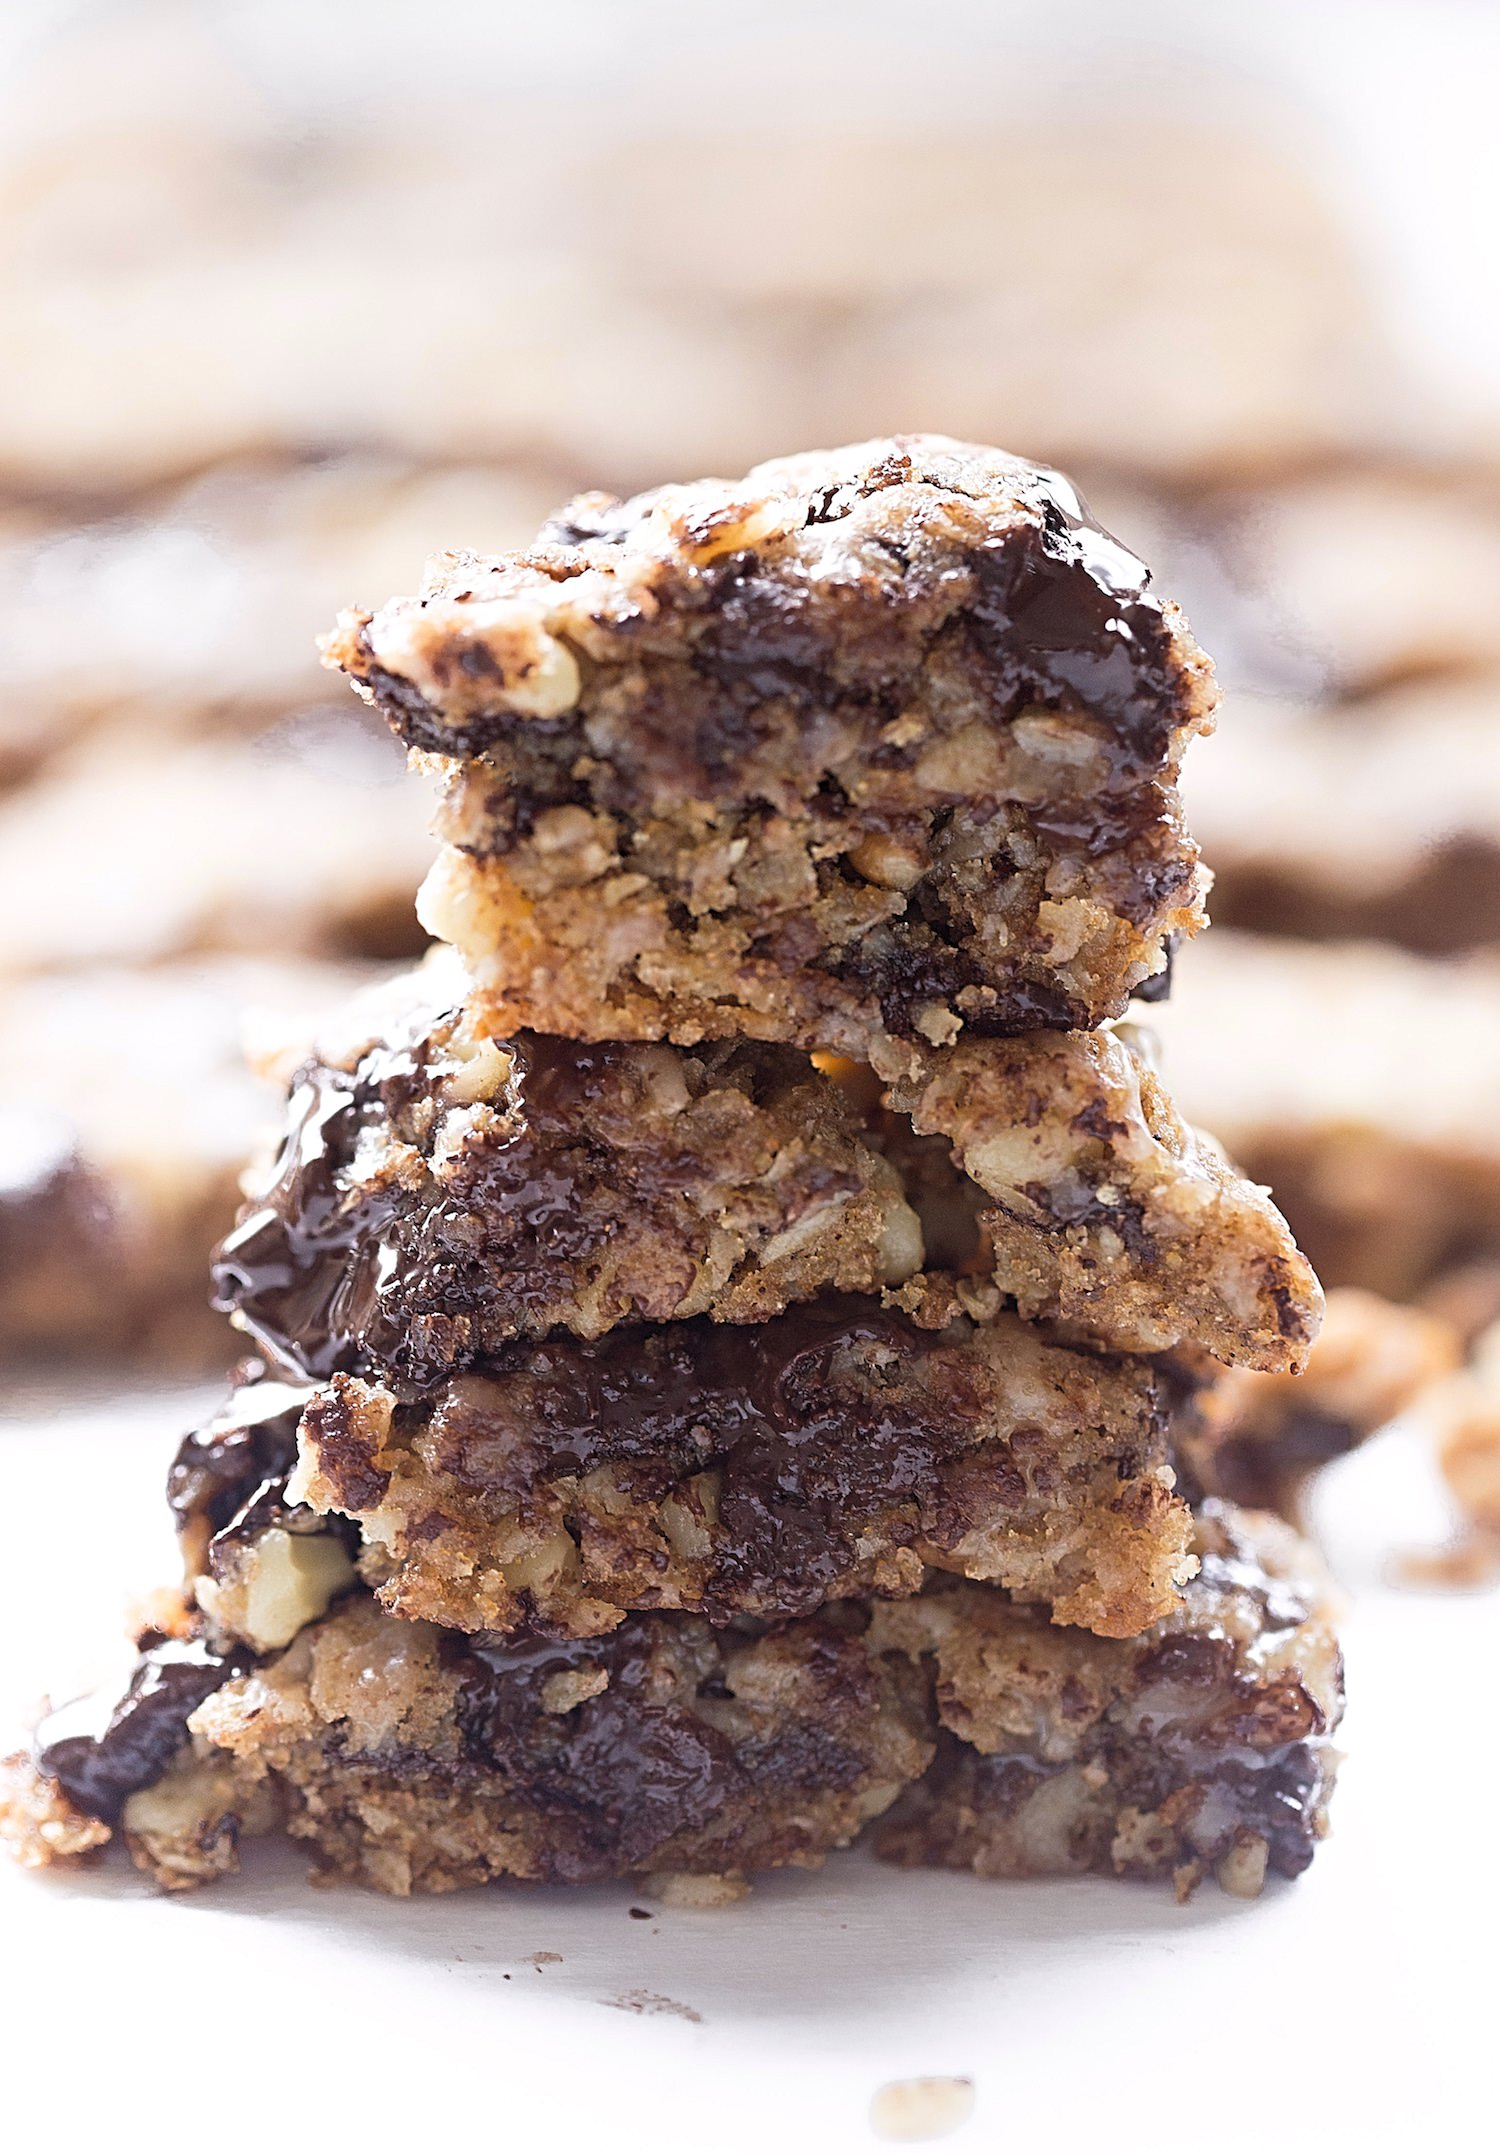 Whole Wheat Oatmeal Chocolate Chip Walnut Bars: soft, chewy, gooey, hearty oatmeal bars packed with chocolate chunks and walnuts. Video included! | TrufflesandTrends.com